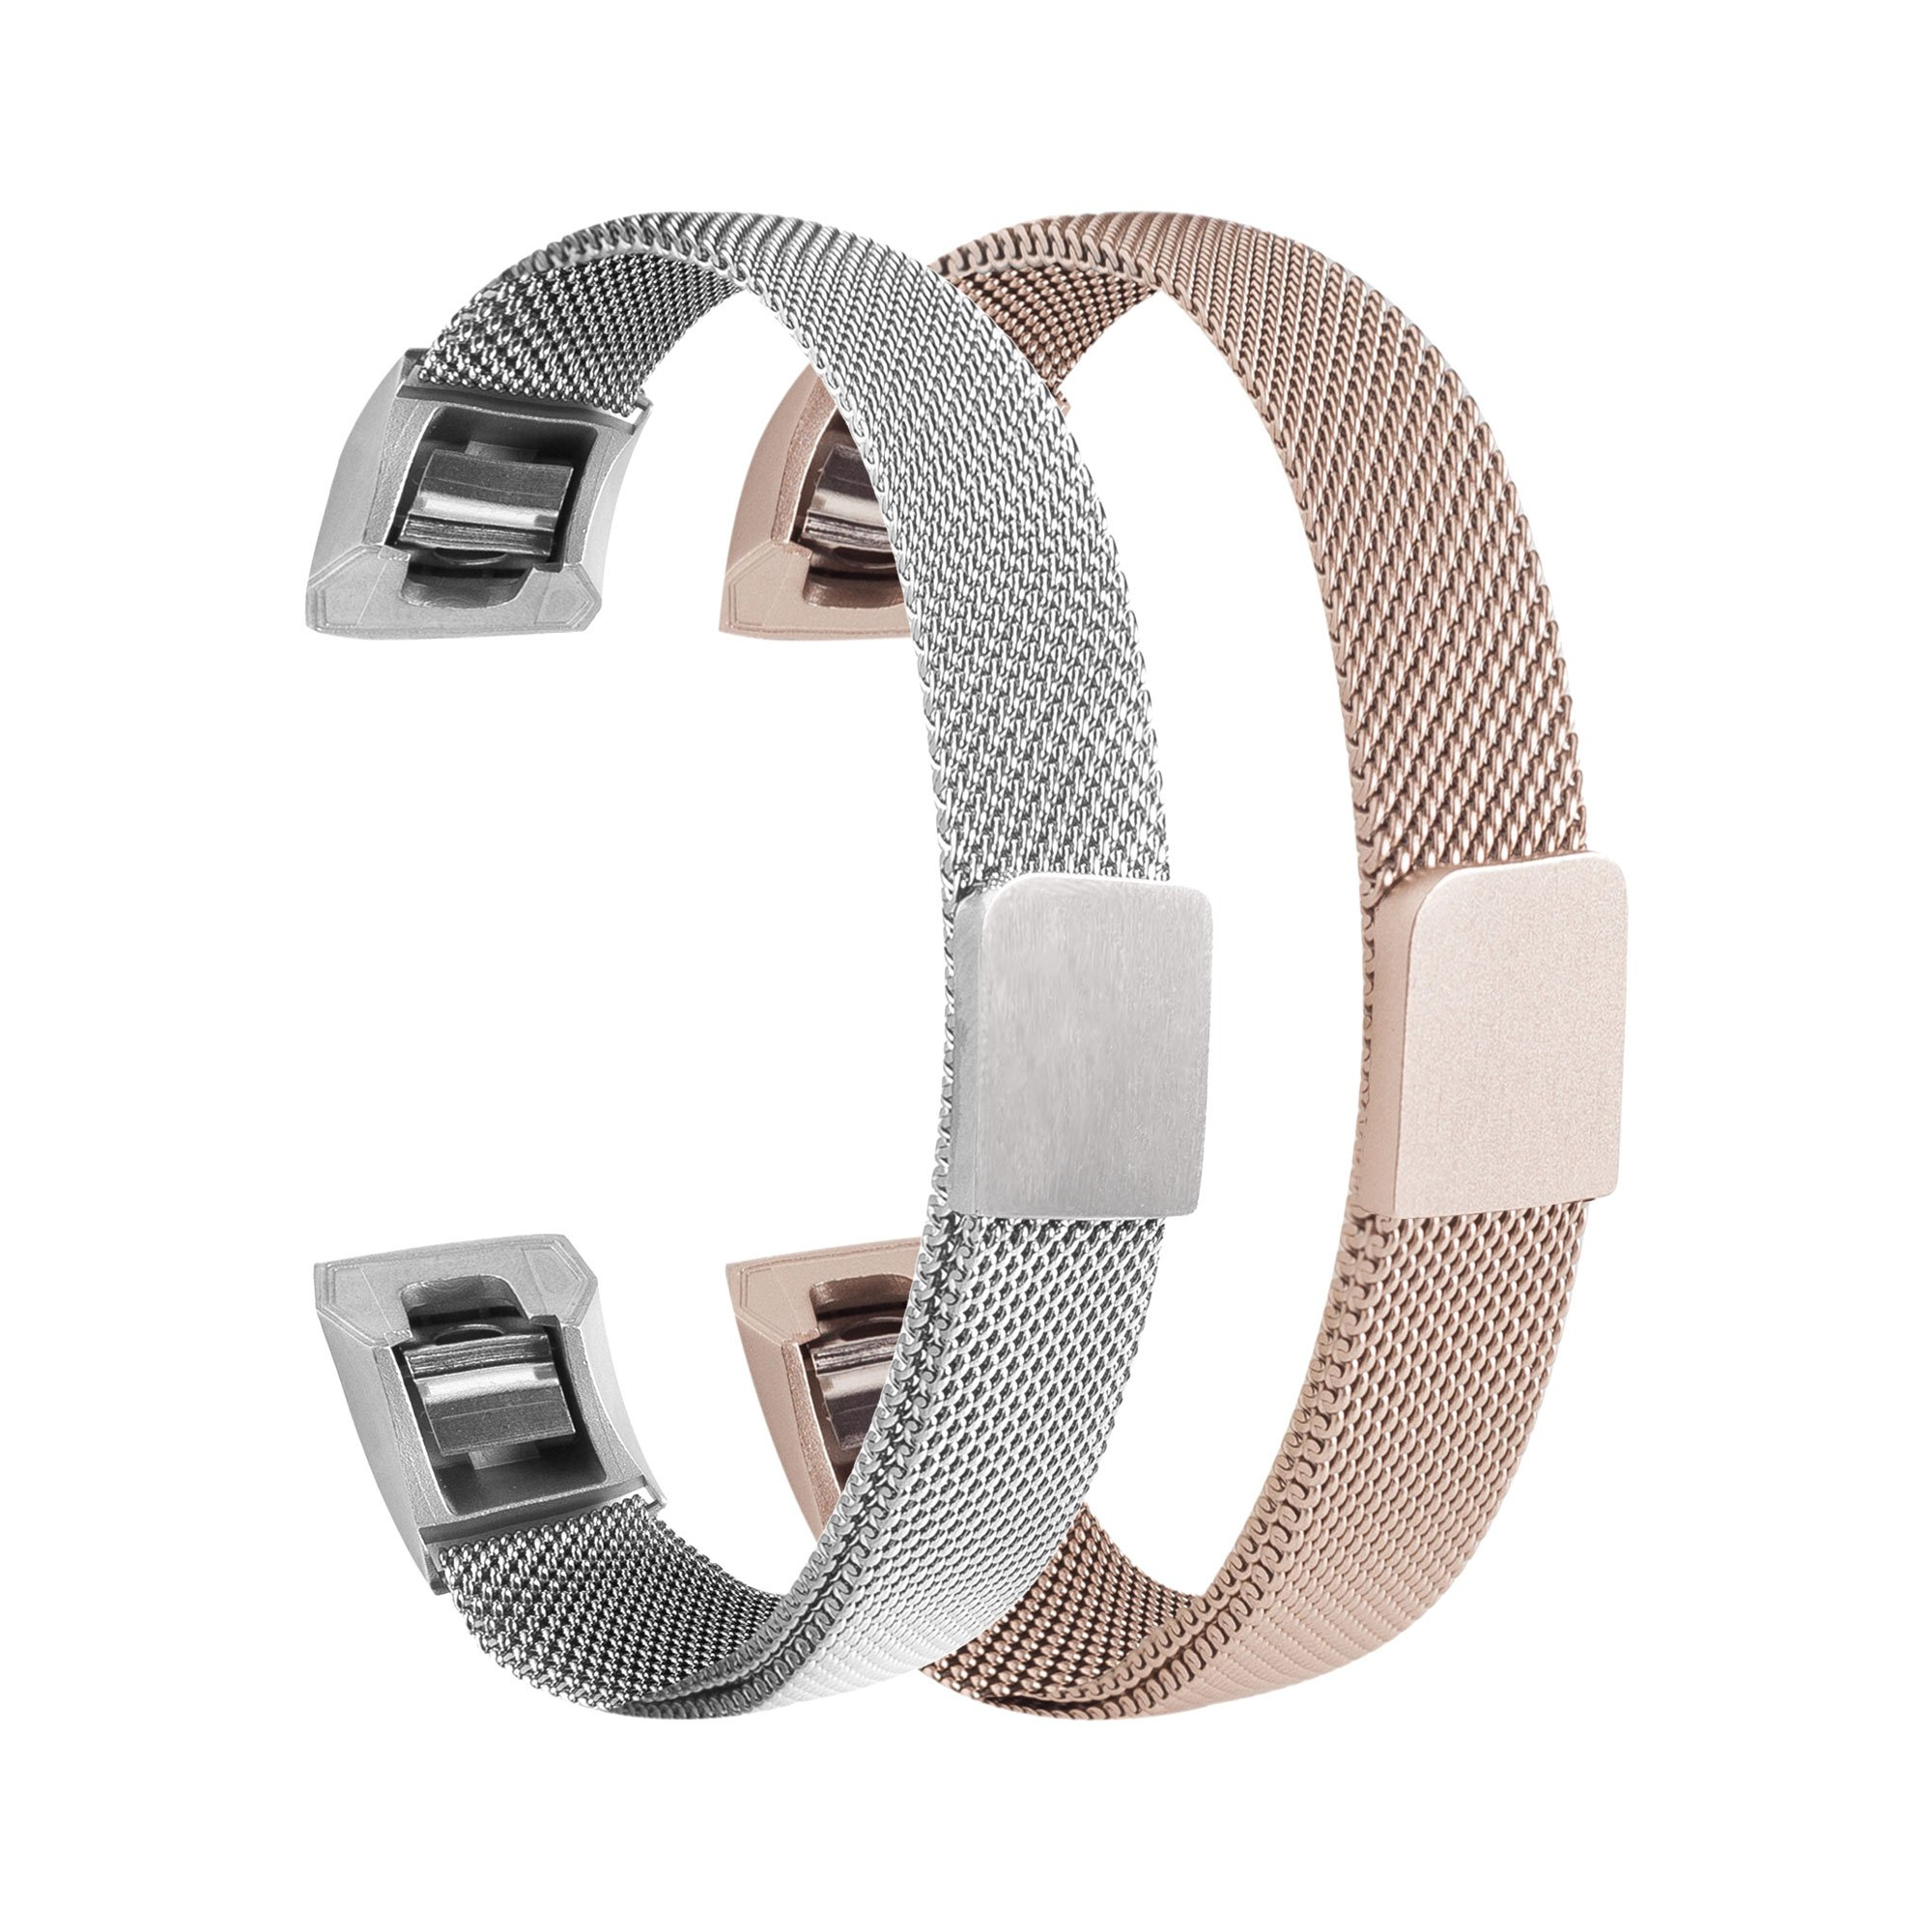 Bewish 2 Pcs Milanese Loop Stainless Steel Watch Band Bracelet for Fitbit Alta/Alta HR Magnet Clasp Lock Adjustable Replacement Watch Strap (S, Silver & Champagne)